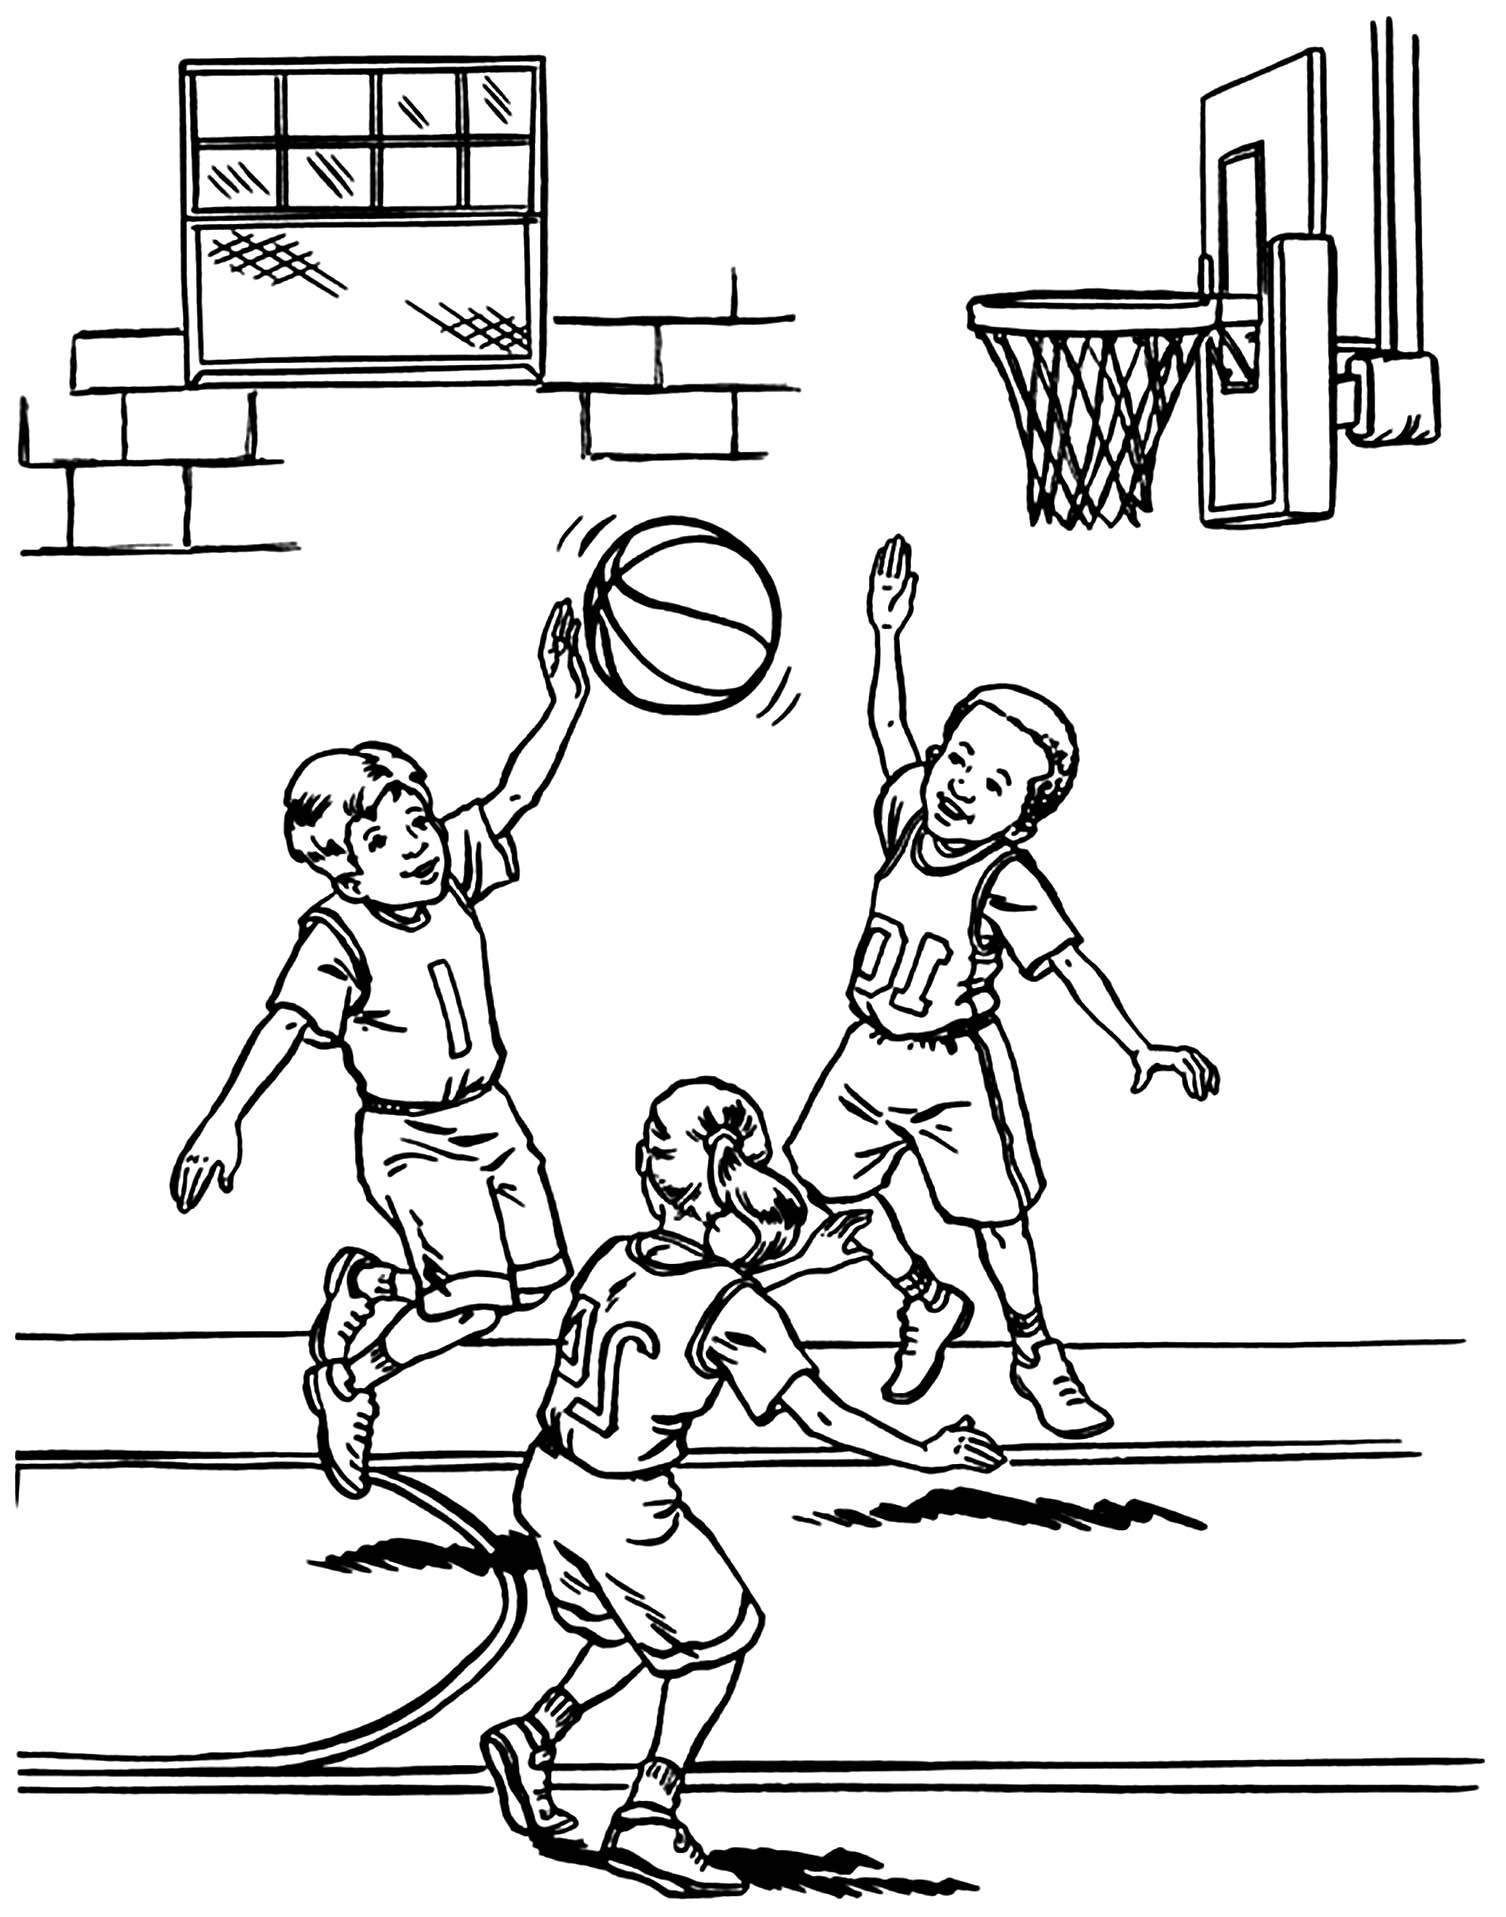 basketball pictures to color free printable basketball coloring pages for kids pictures basketball to color